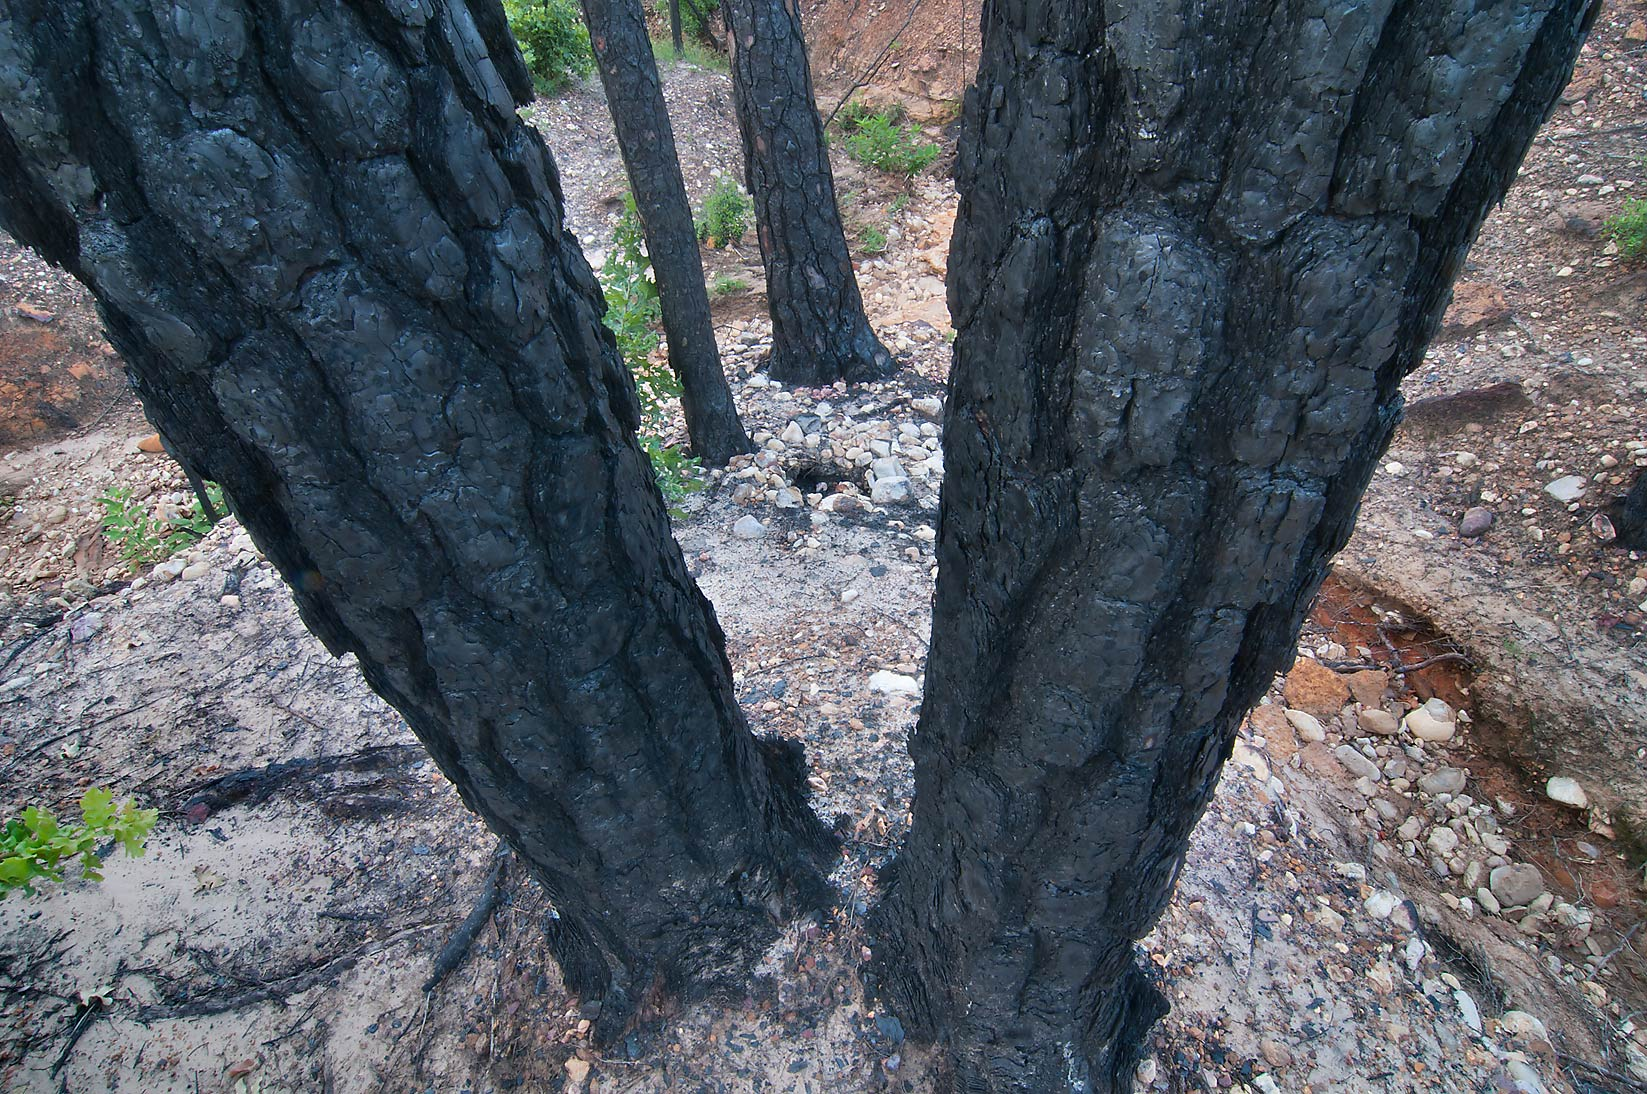 Blackened tree trunks near Lost Pines Trail in Bastrop State Park. Bastrop, Texas